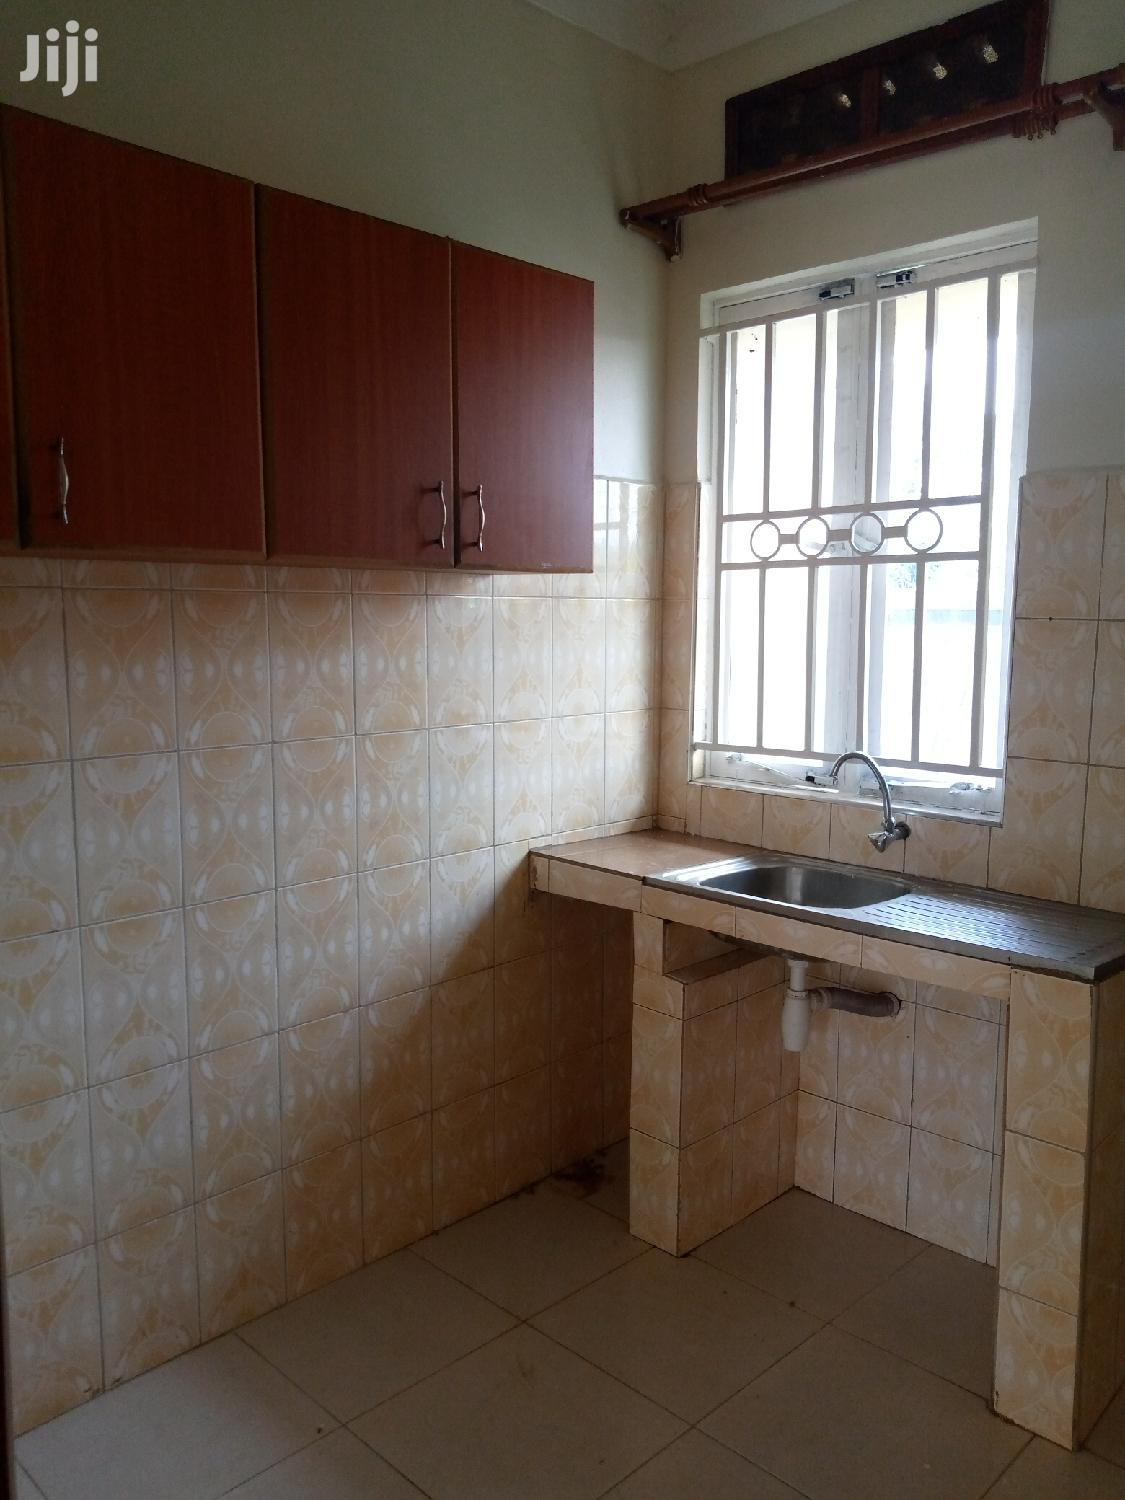 Namugongo 2 Bedroom House For Rent   Houses & Apartments For Rent for sale in Kampala, Central Region, Uganda